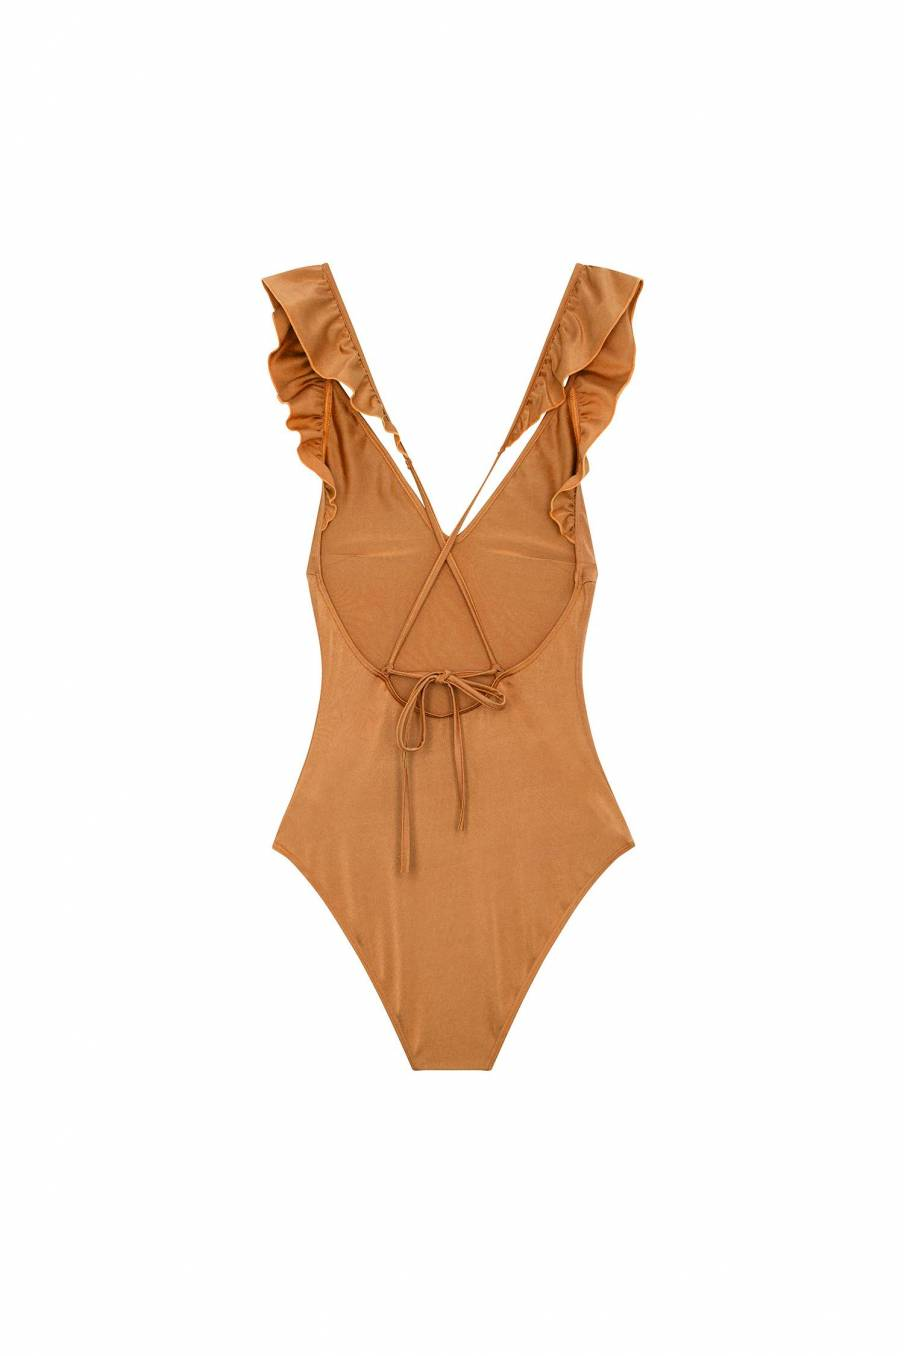 Bathing Suit Reva Cinnamon